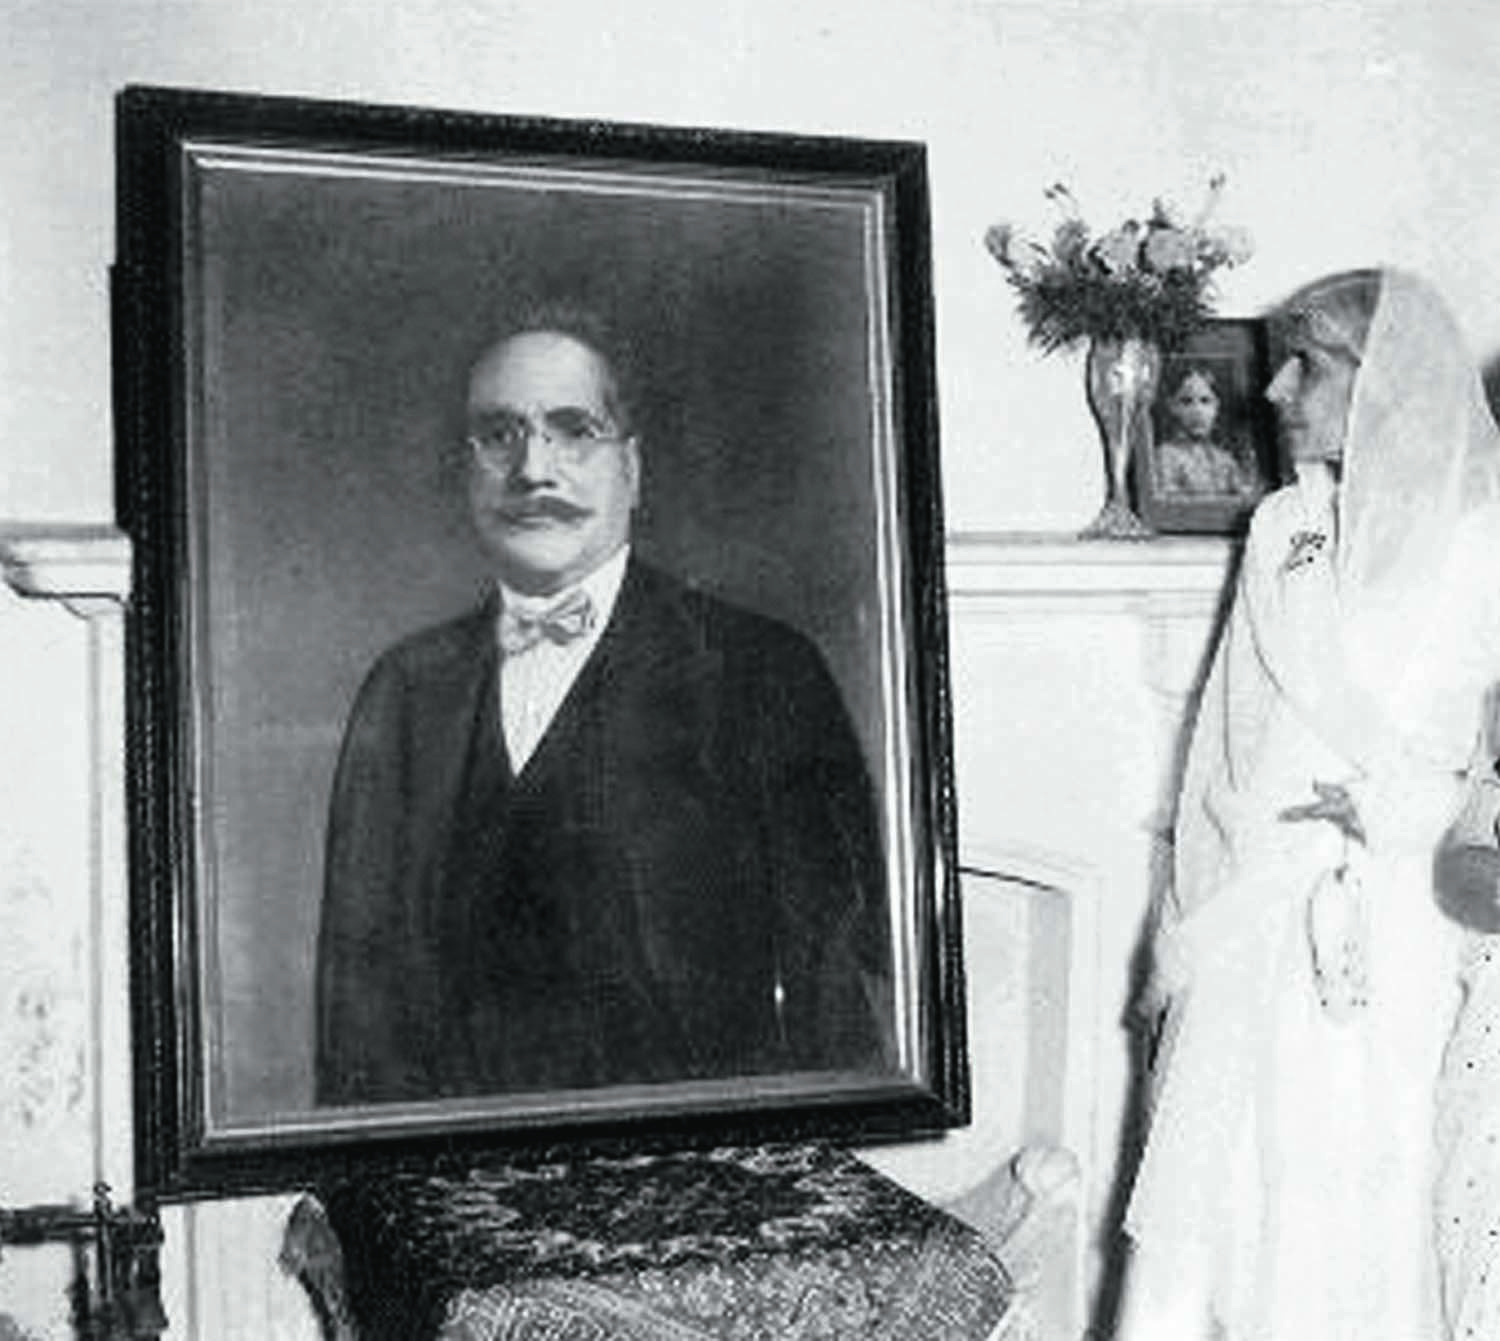 MISS Fatima Jinnah looks at a portrait of Allama Iqbal during a visit to his home in Lahore in the 1960s.   Photos: The Allama Iqbal Collection.